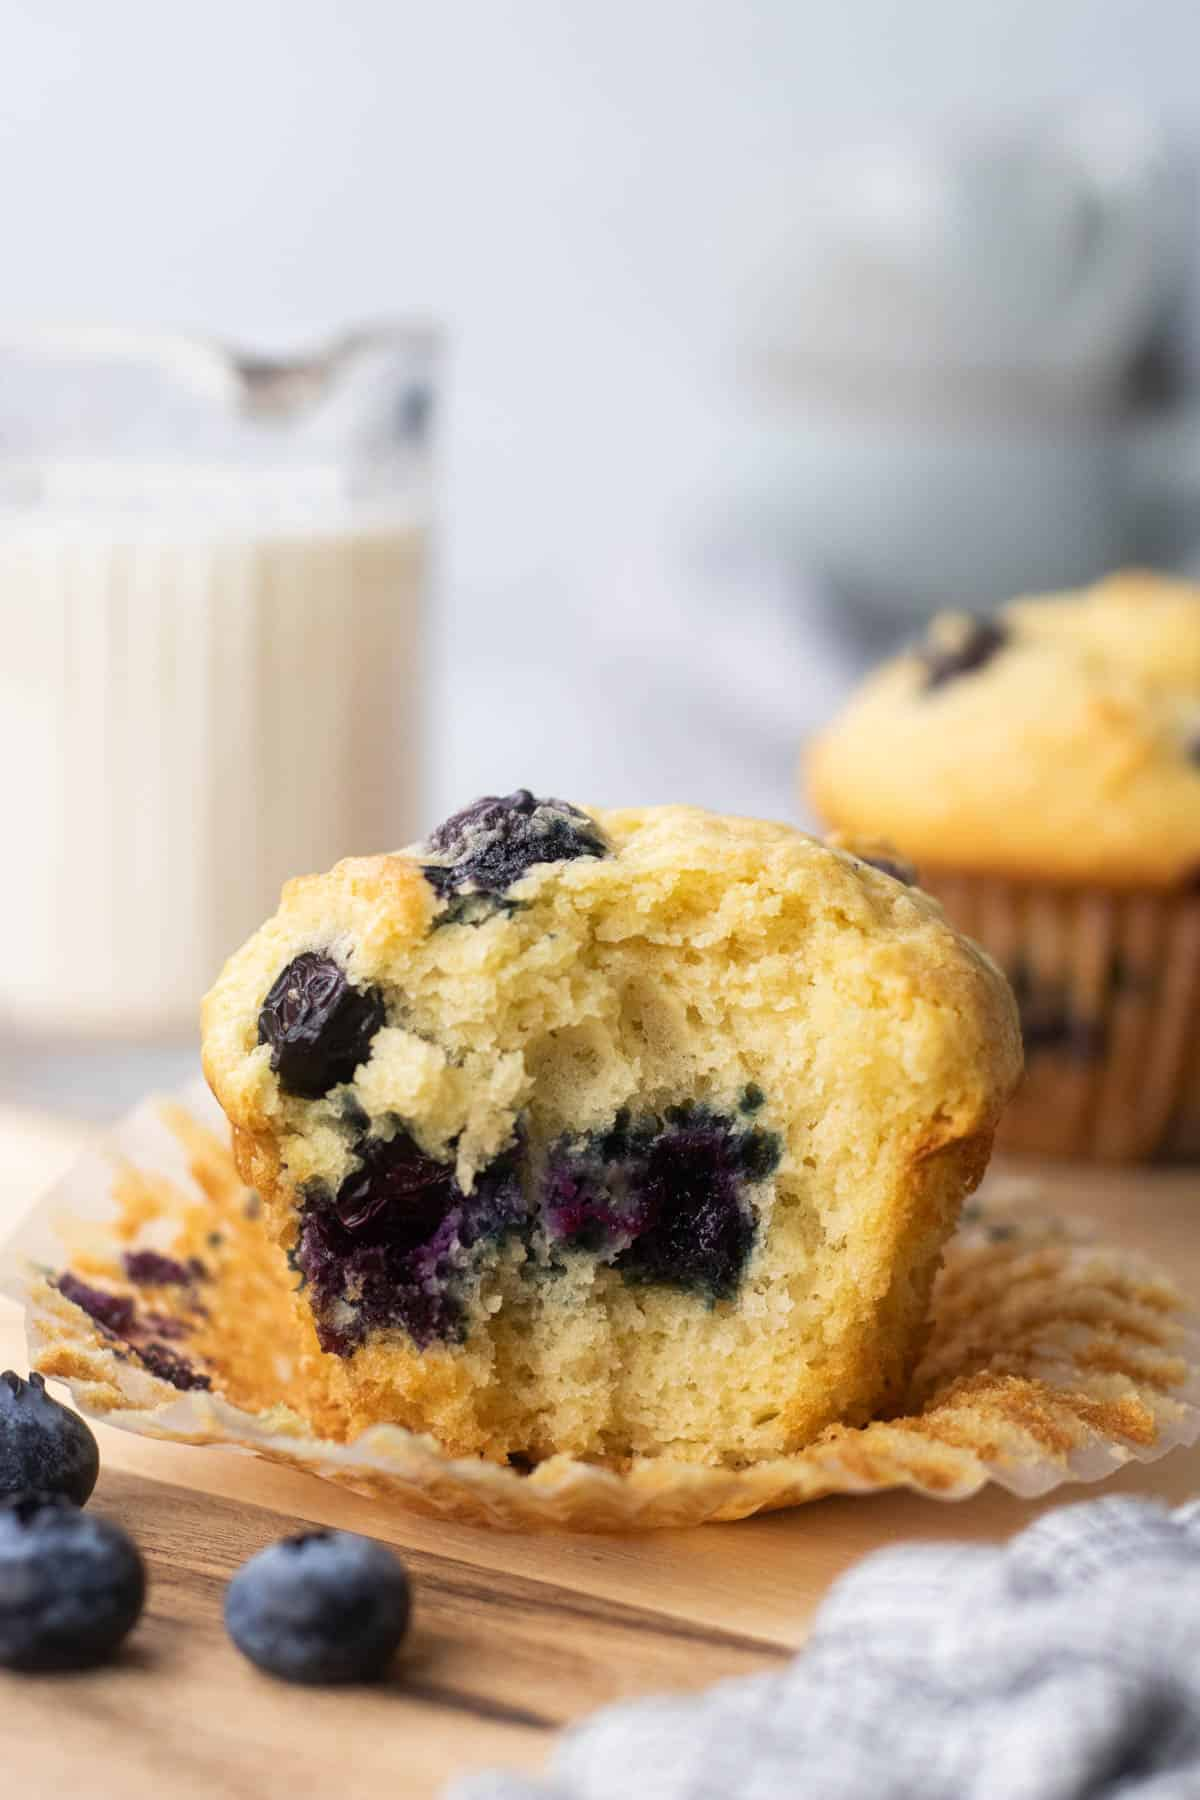 A bite shot of a blueberry muffins on a cutting board.